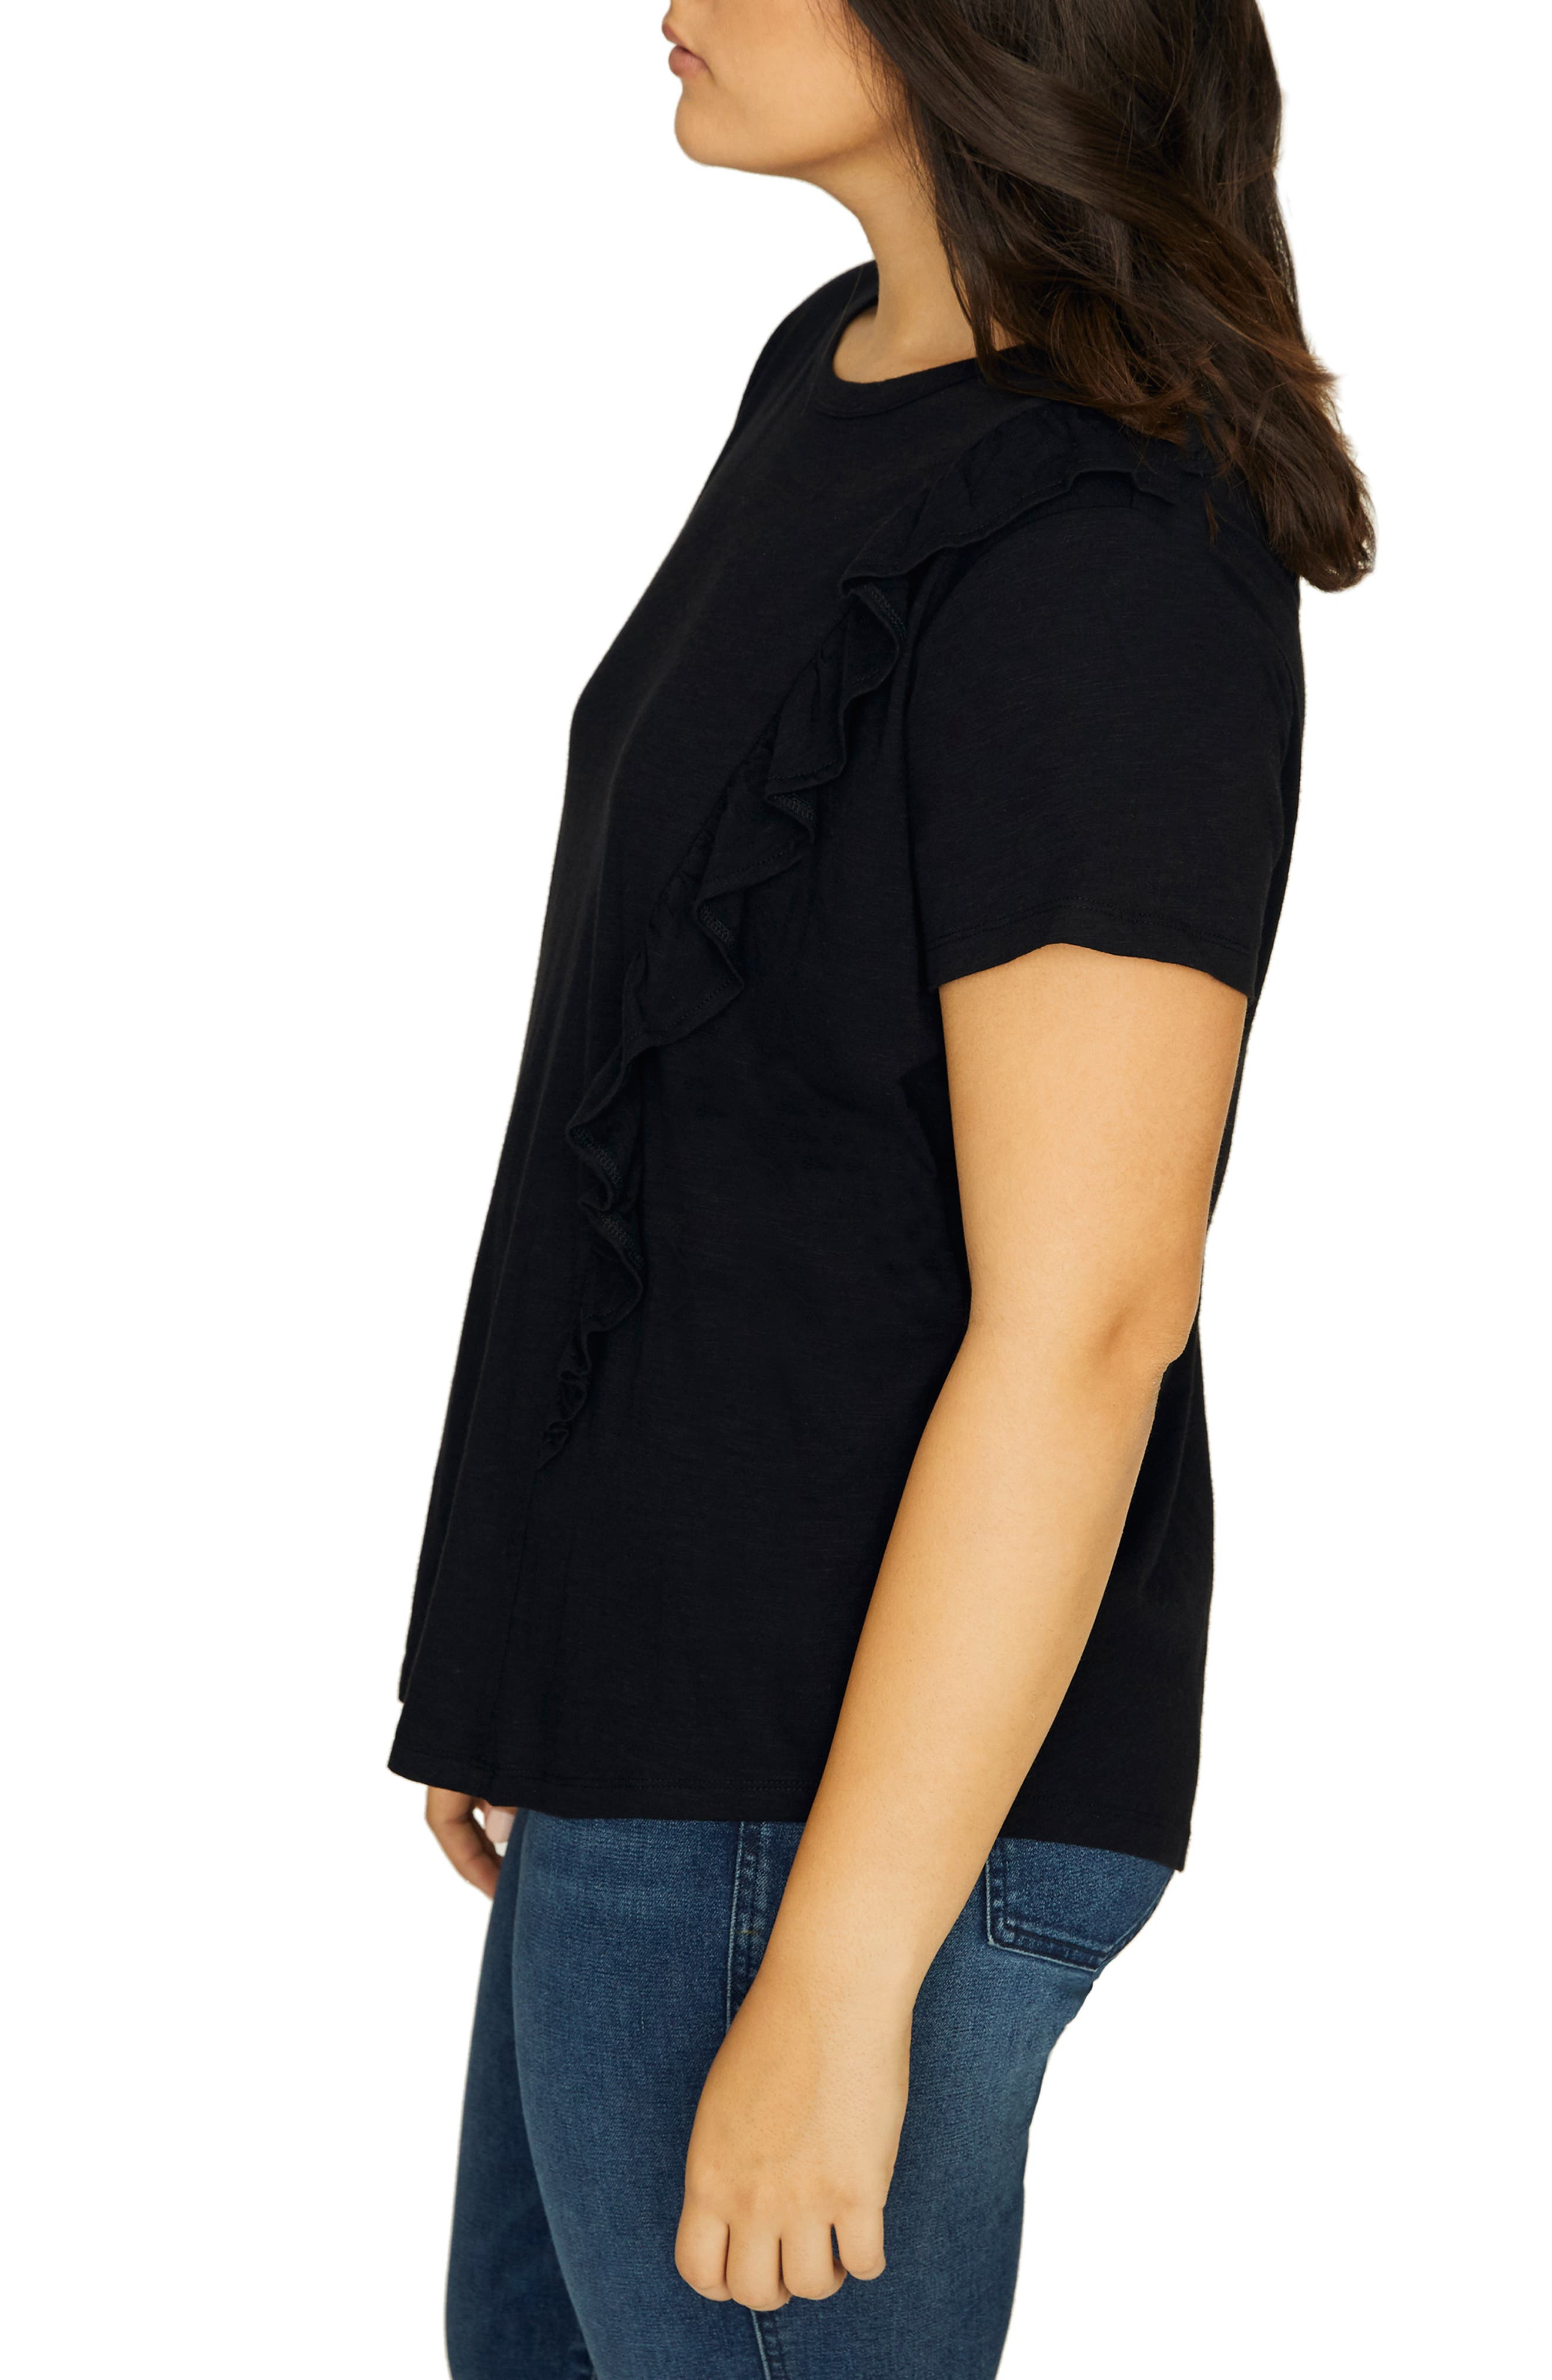 SANCTUARY, Gia Ruffle Trim Tee, Alternate thumbnail 3, color, BLACK